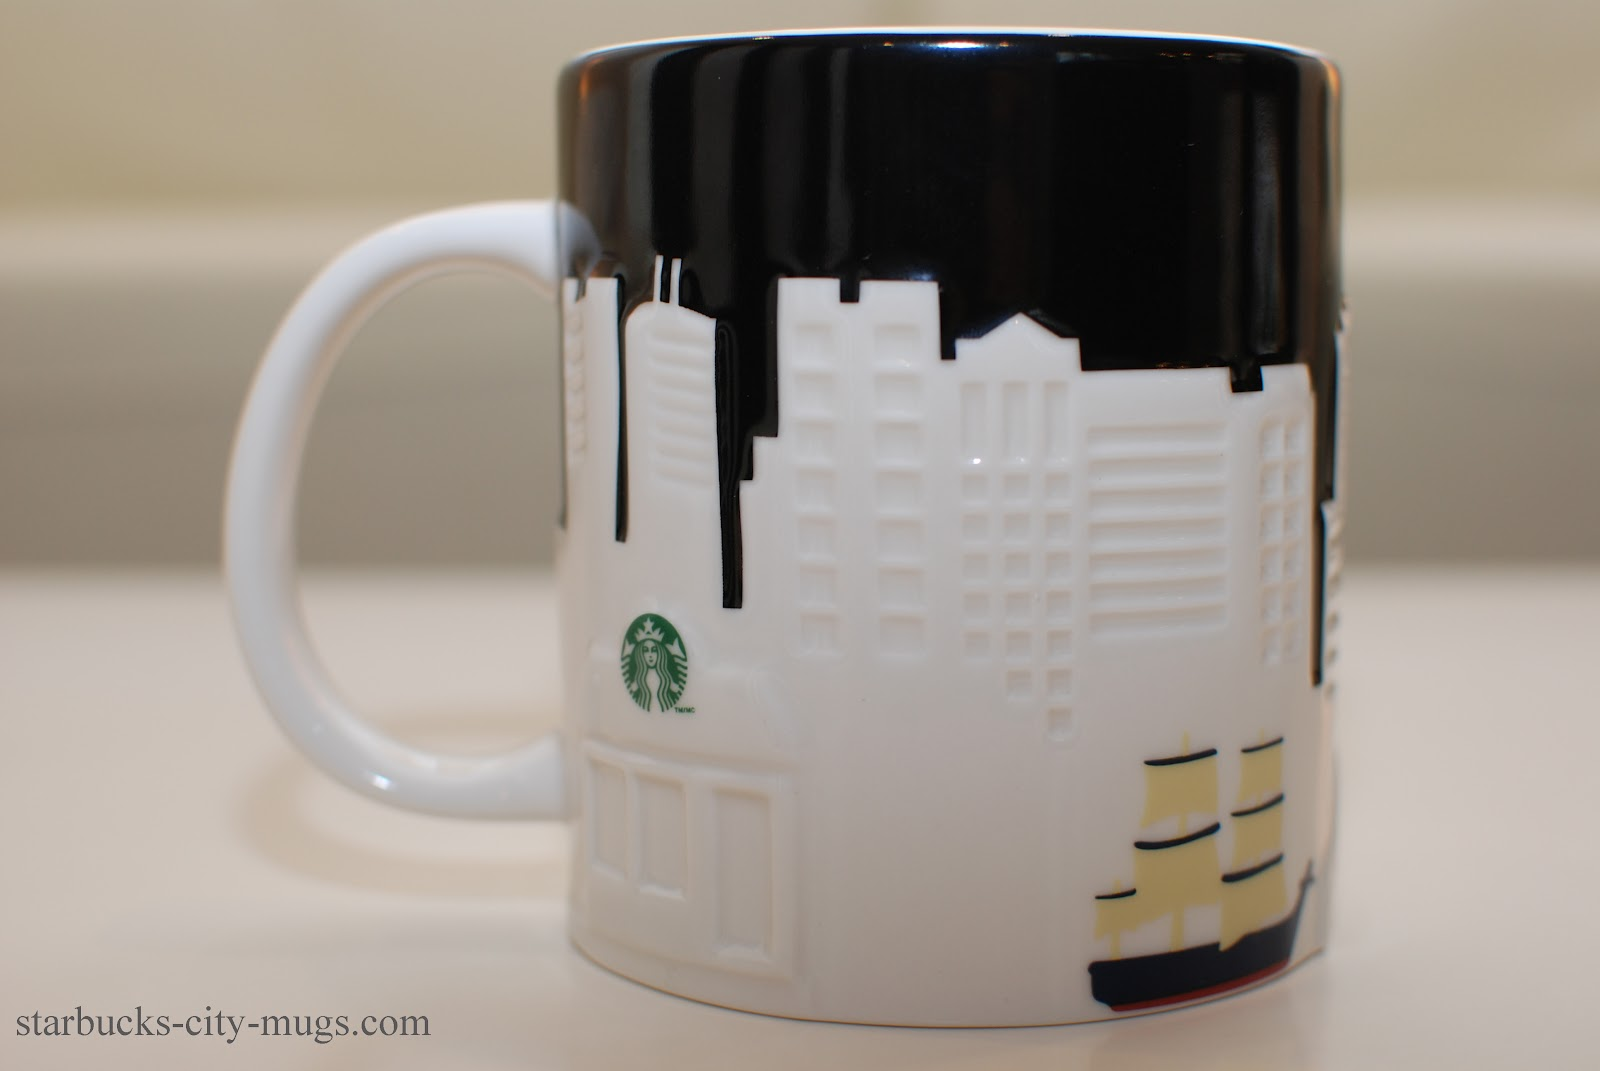 MugsRelief Starbucks MugsRelief City Starbucks Mugs Mugs City Starbucks ulJ31c5TFK